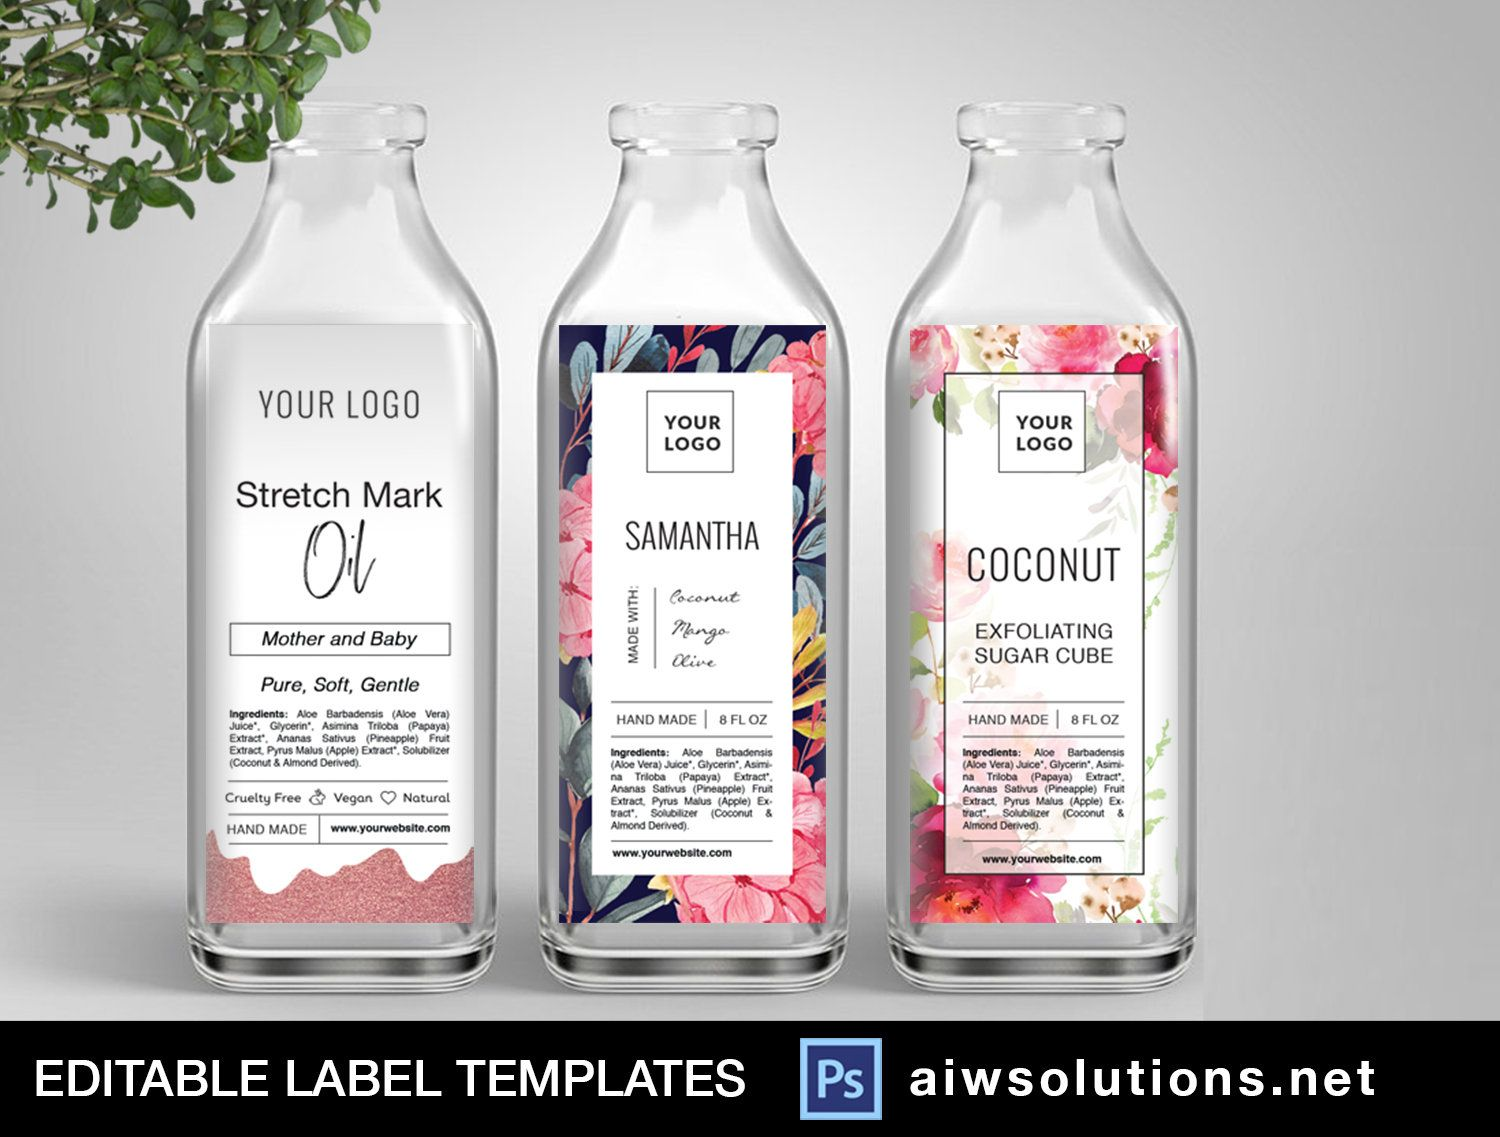 Juice Bottle Label Template Packaging Label Template Cosmetic Label Fragrance Skin Care Label Candle Label Template Sticker Template In 2020 Bottle Label Template Label Templates Cosmetic Labels